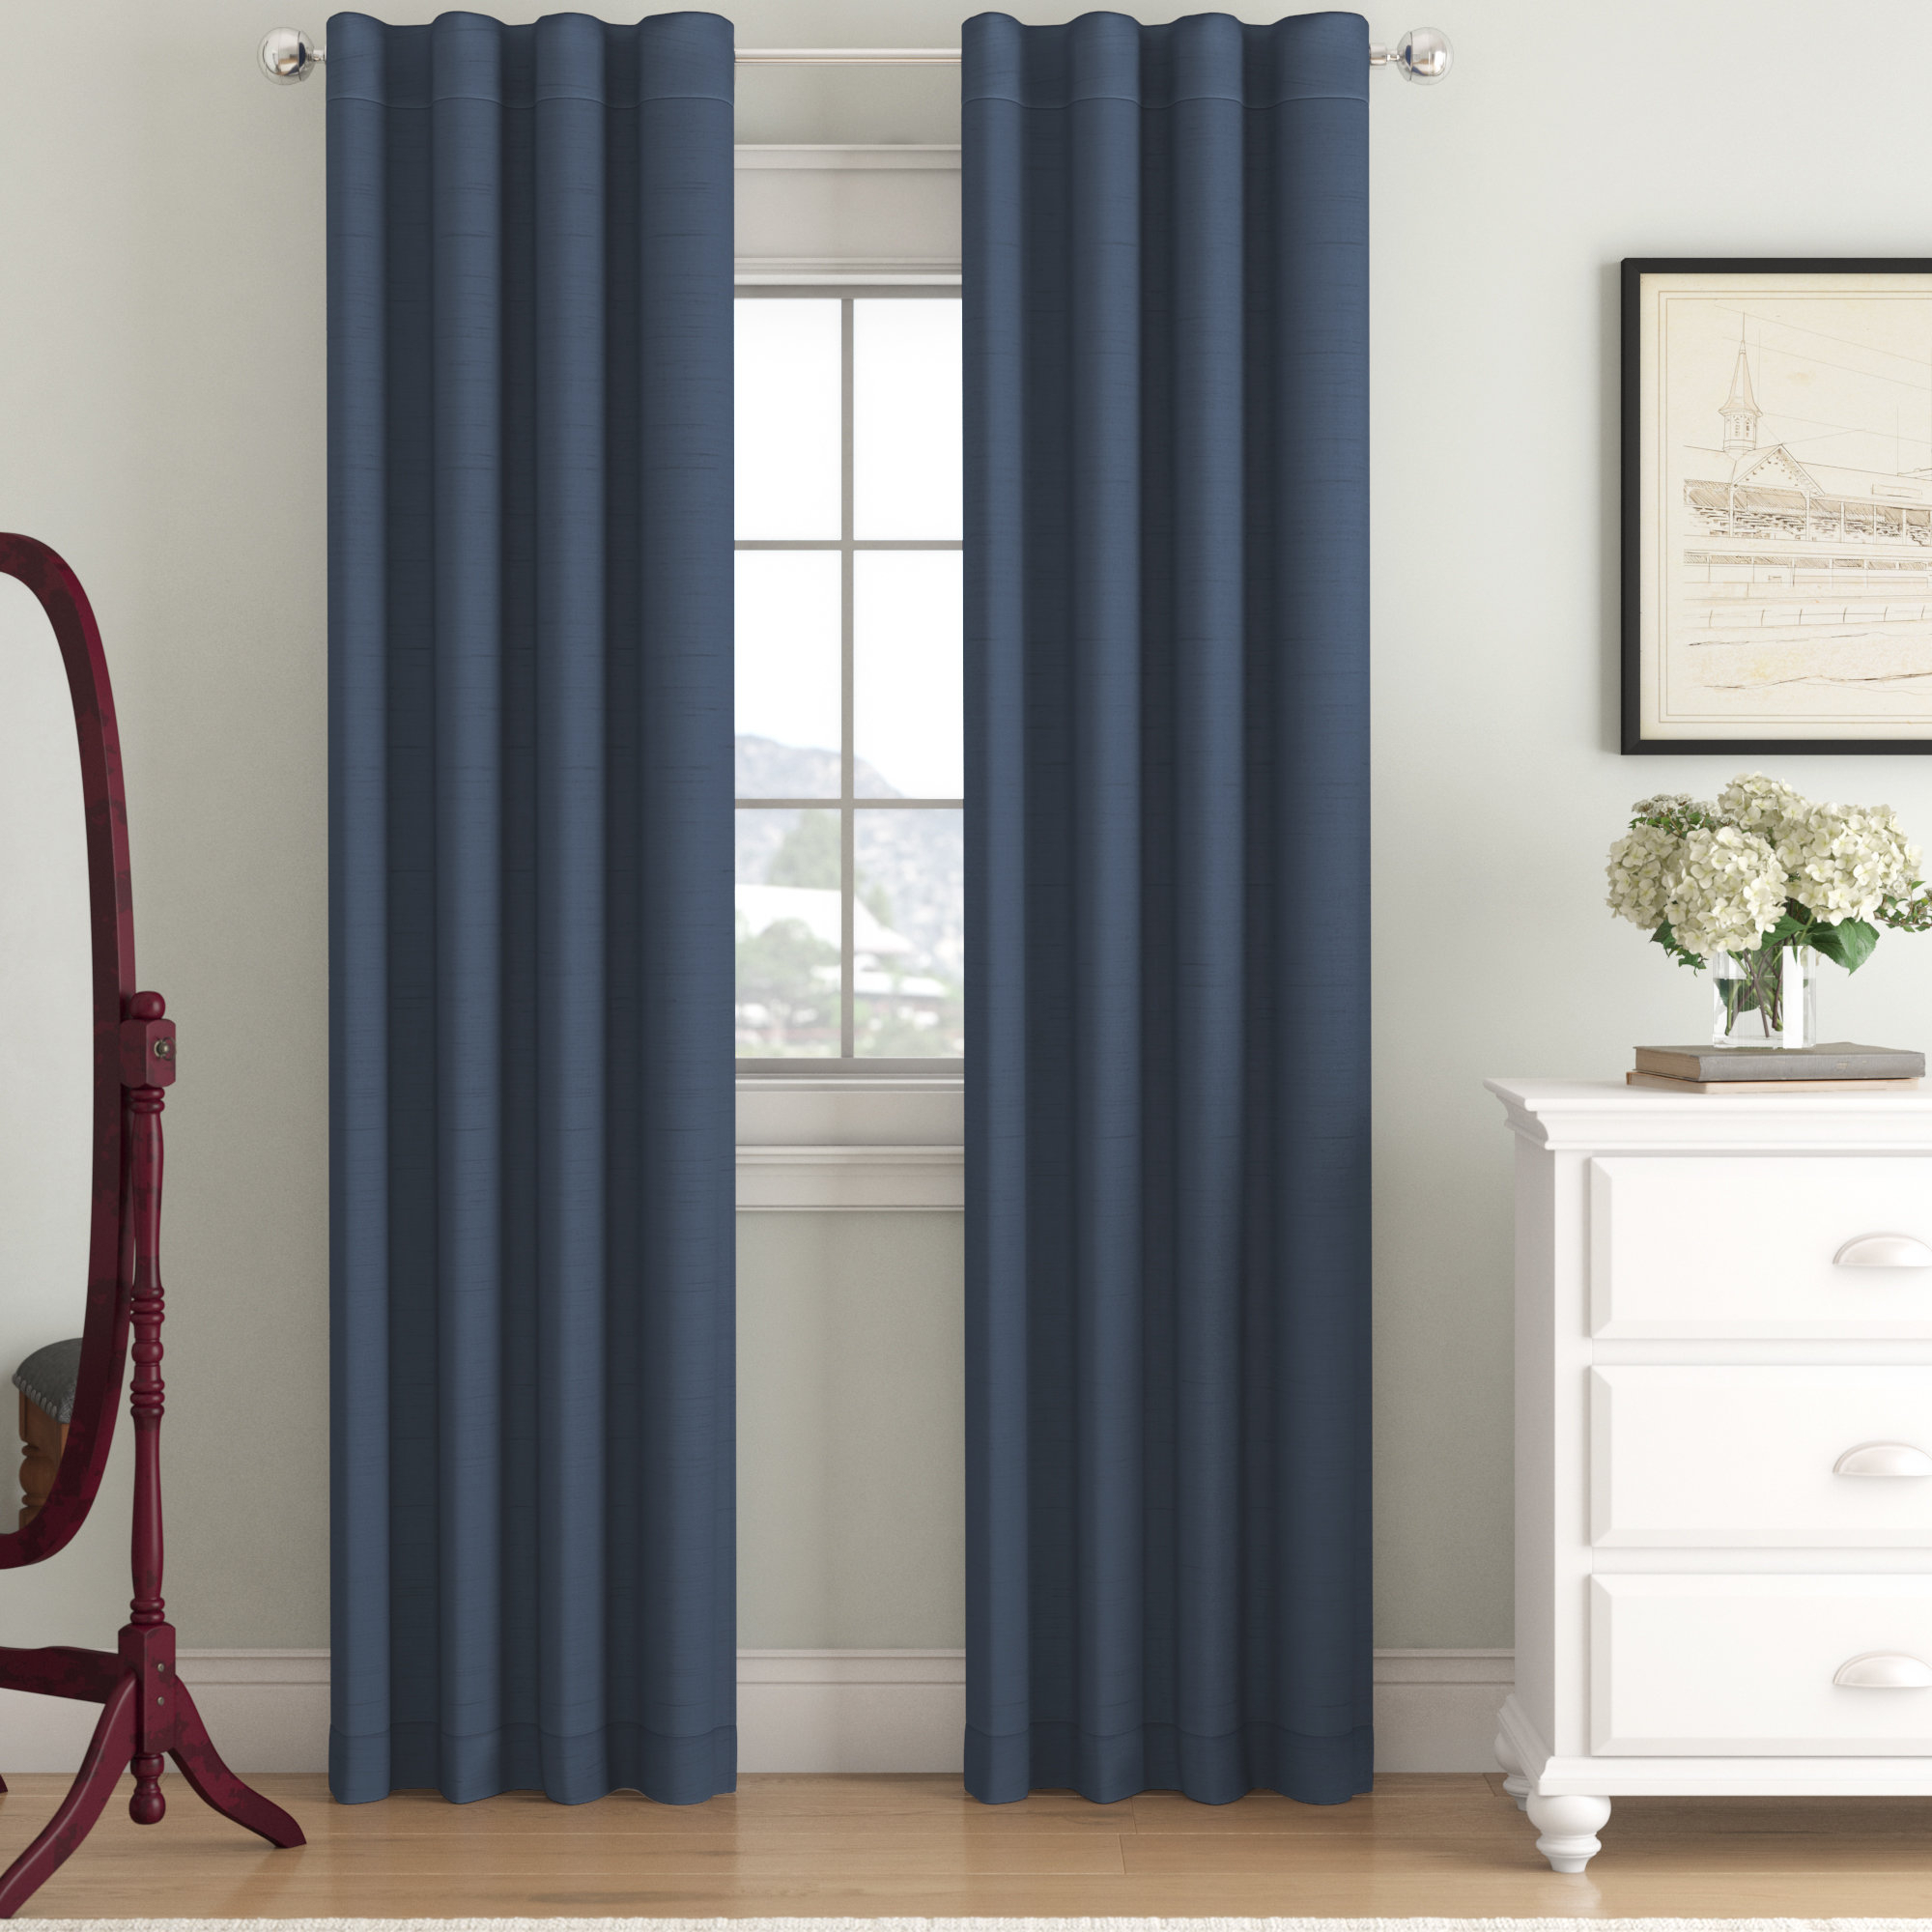 Curtain ~ Exclusive Fabrics Solid Faux Silk Taffeta Navy Regarding Faux Silk Taffeta Solid Blackout Single Curtain Panels (View 20 of 20)